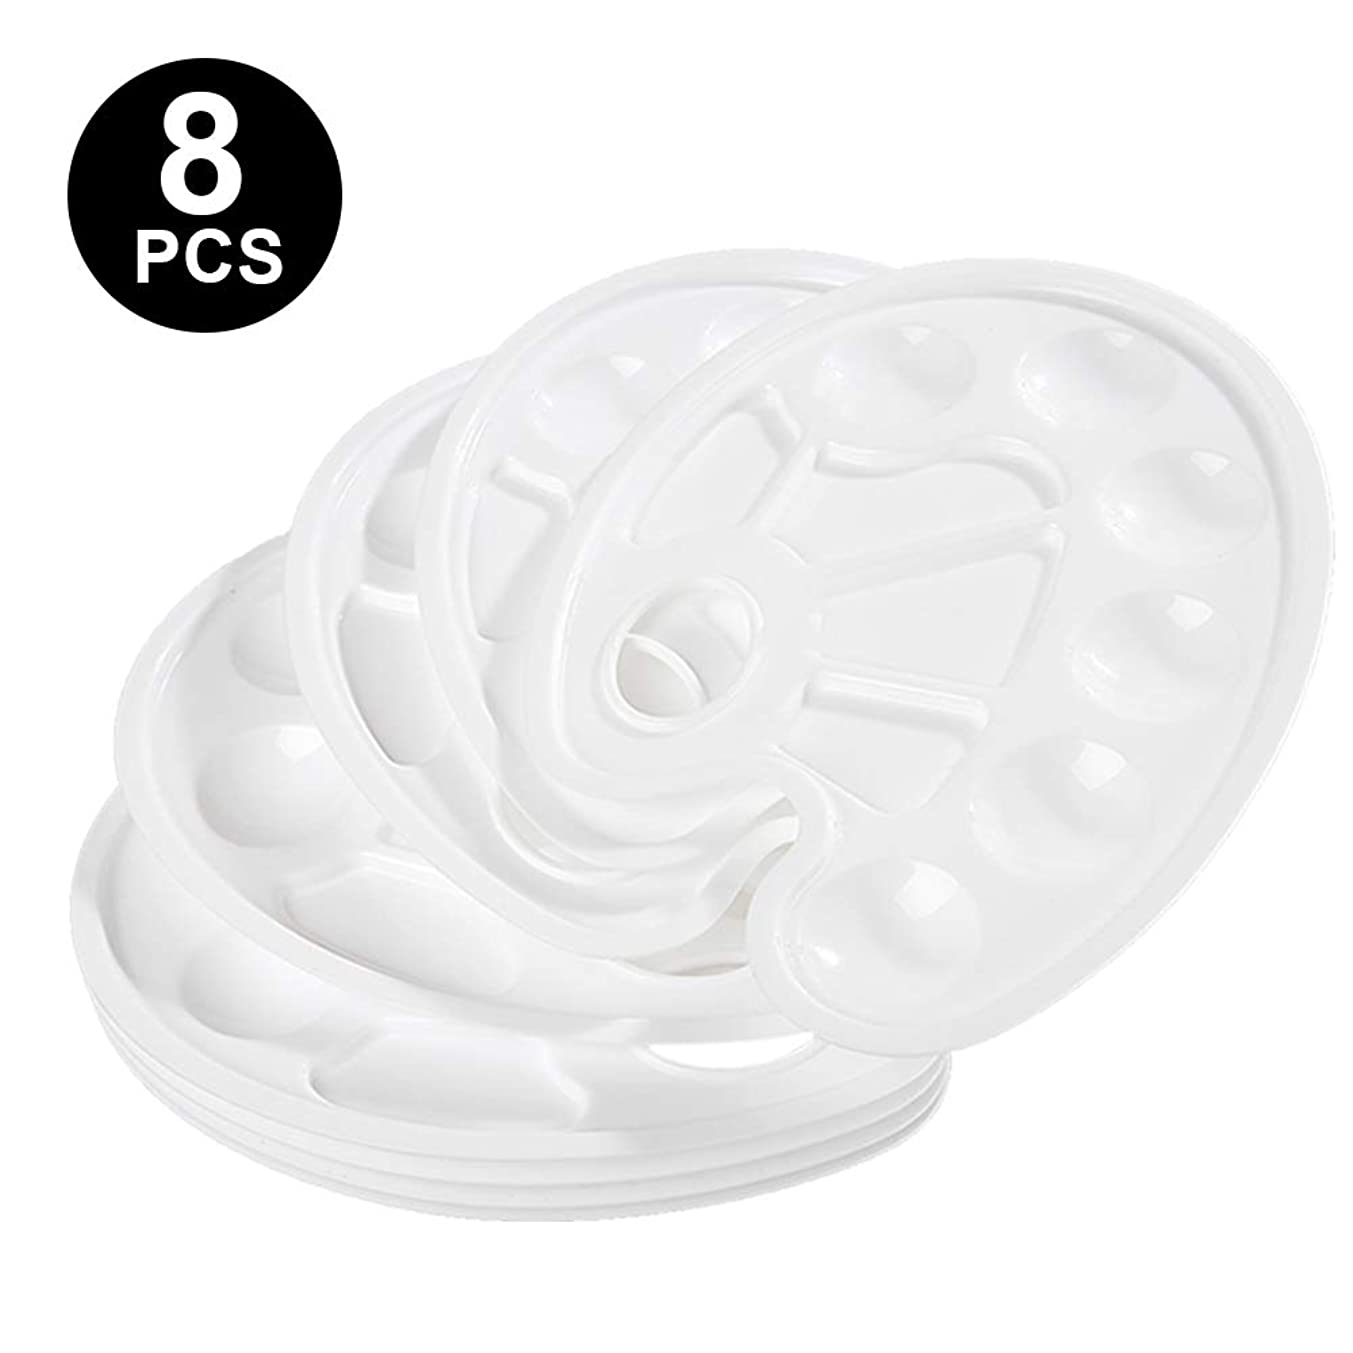 8 Pcs Paint Tray Palette Plastic with Thumb Hole, 9 Inch by 6.7 Inch, 10 Wells for DIY Craft Art Painting